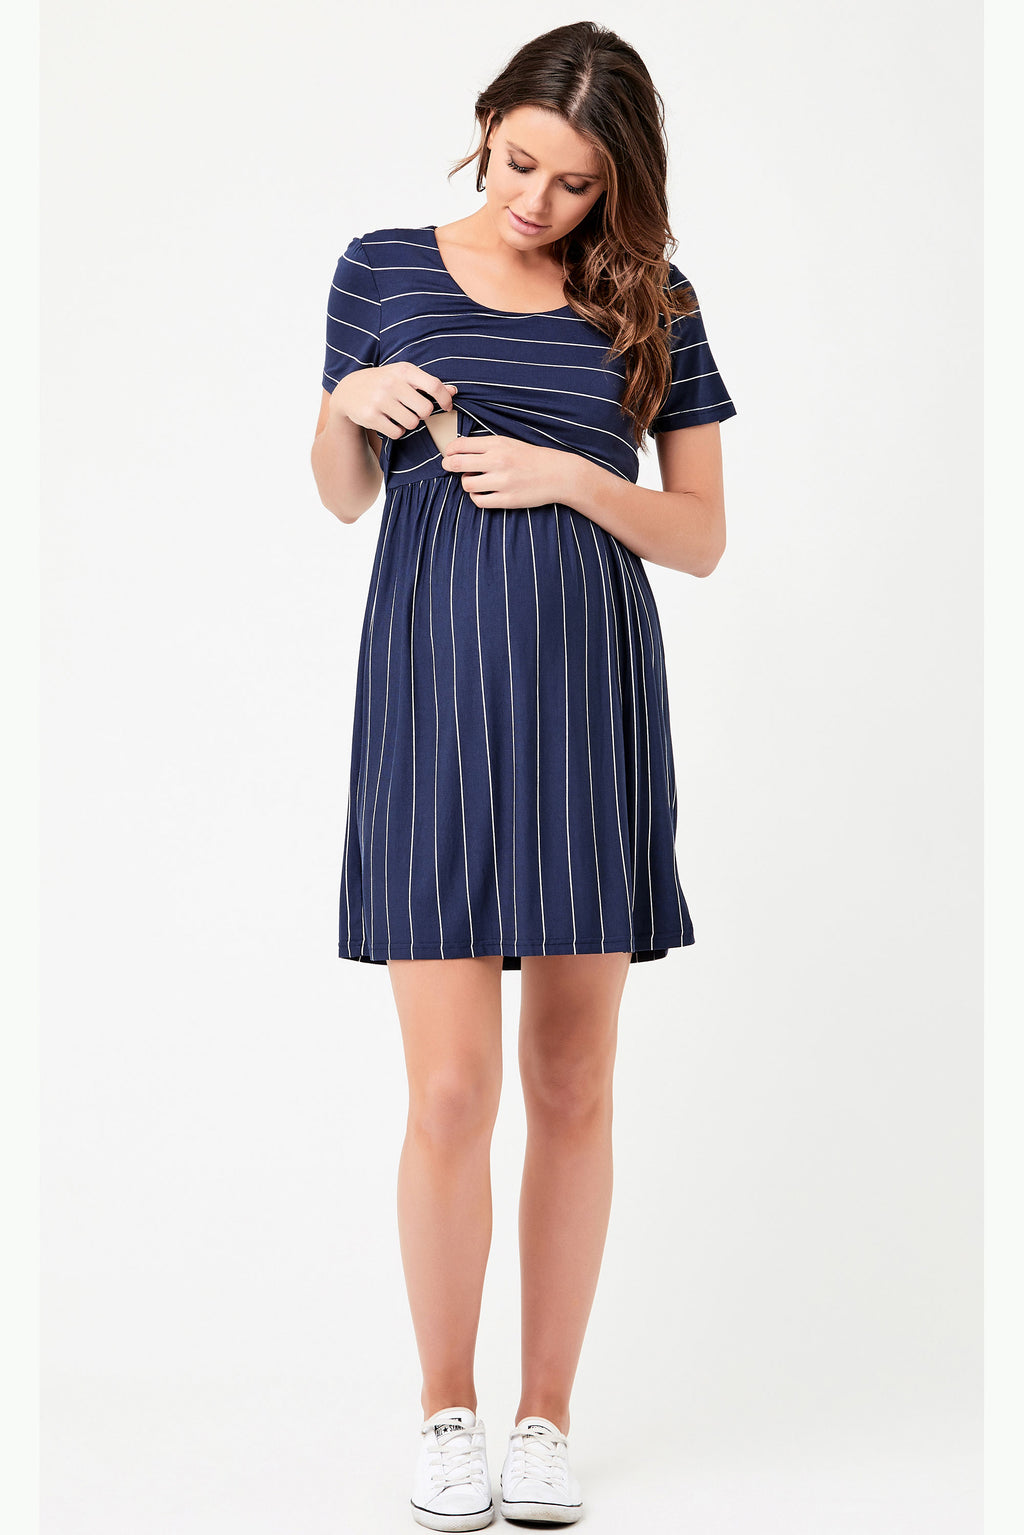 Ripe Cirilla Crop Top Maternity Nursing Dress Navy - Seven Women Maternity